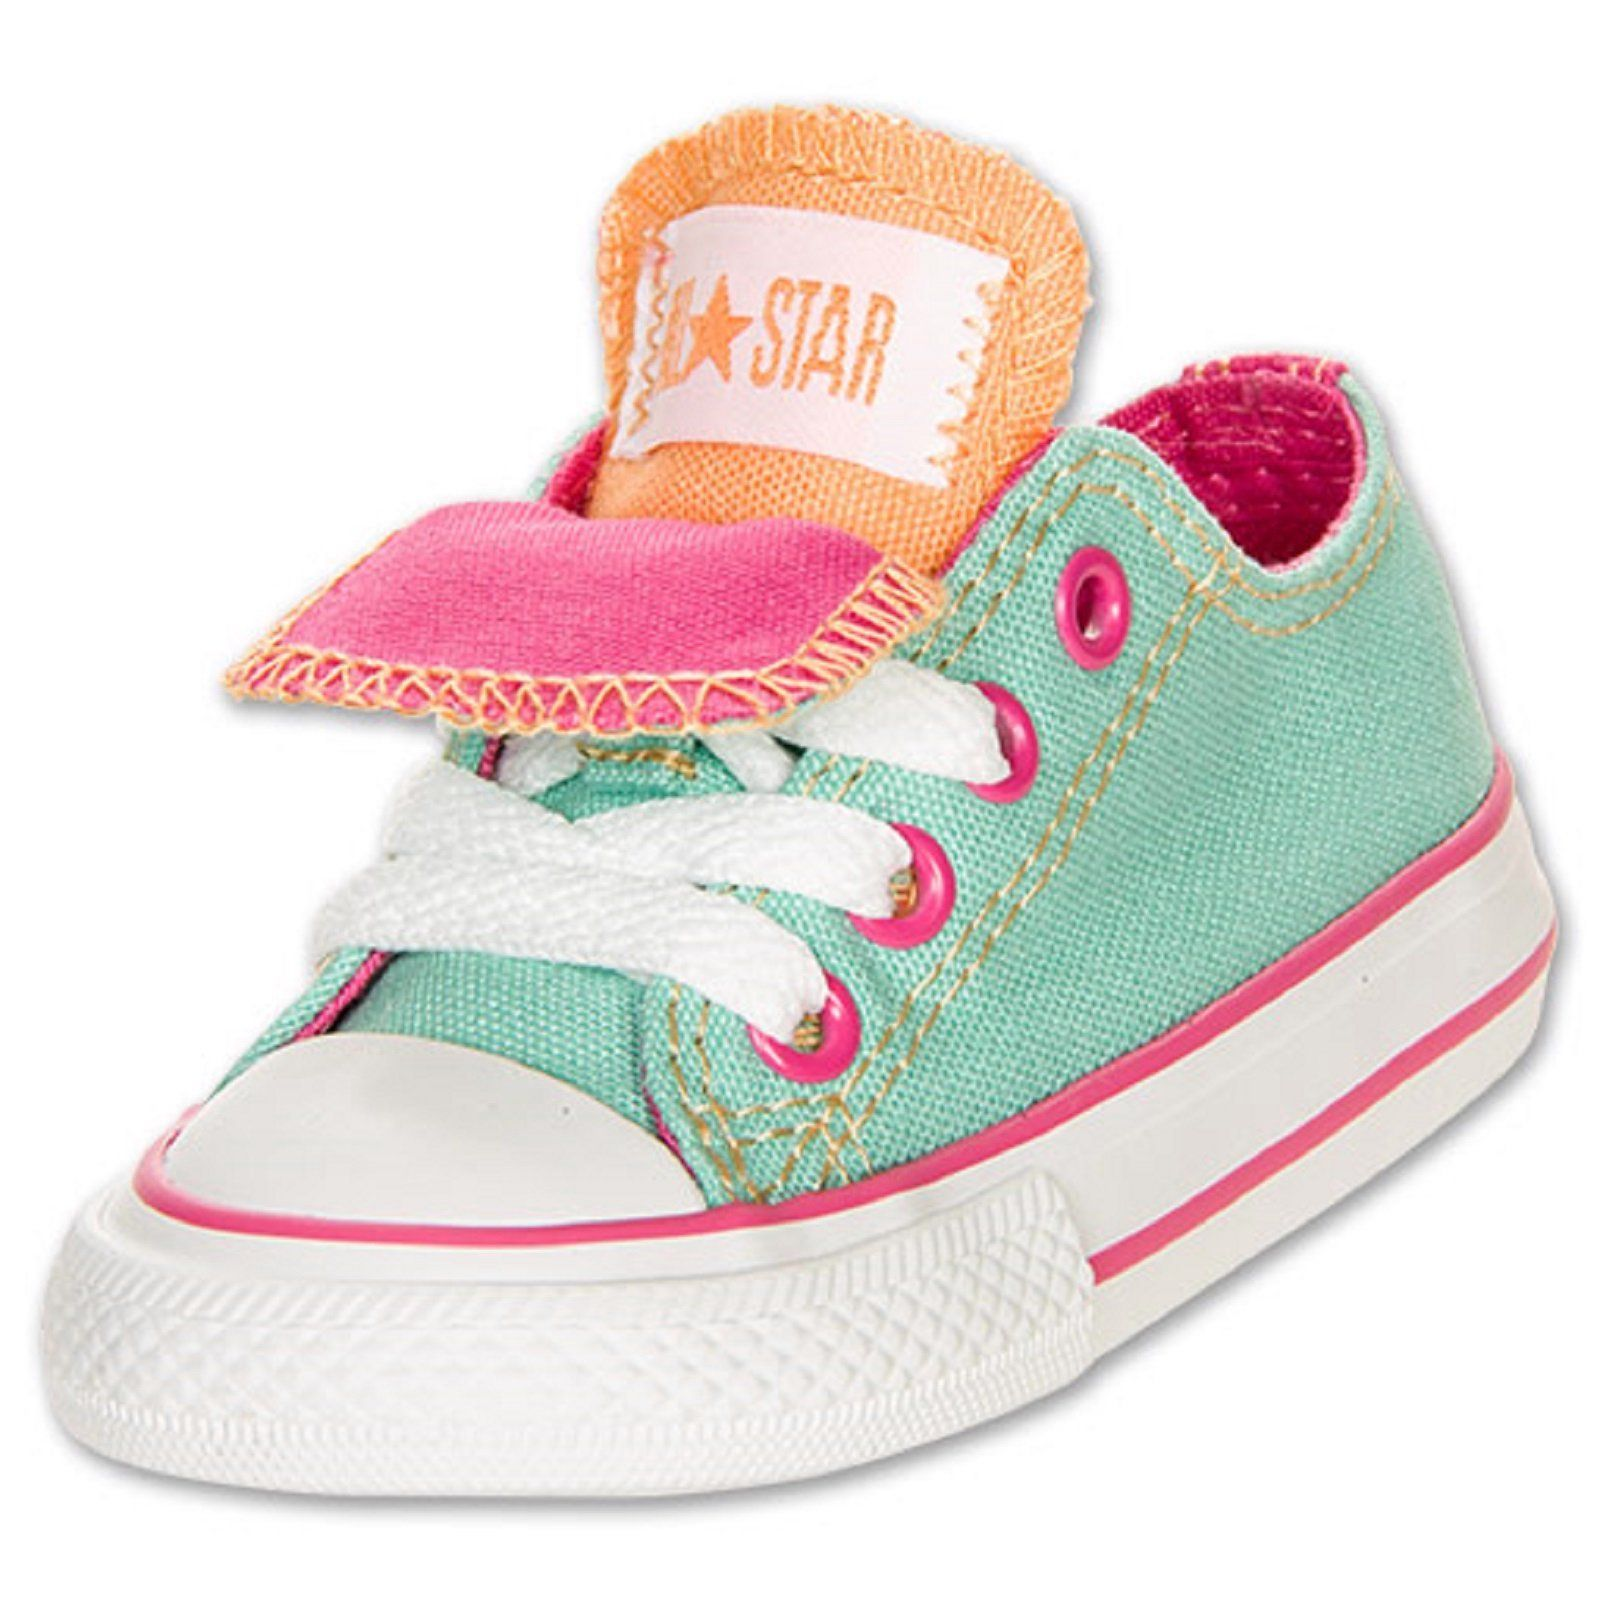 78df0d36211 Baby Girls Shoes Converse Chuck Taylor Double Tongue Ox Toddler Sizes Aqua  Pink